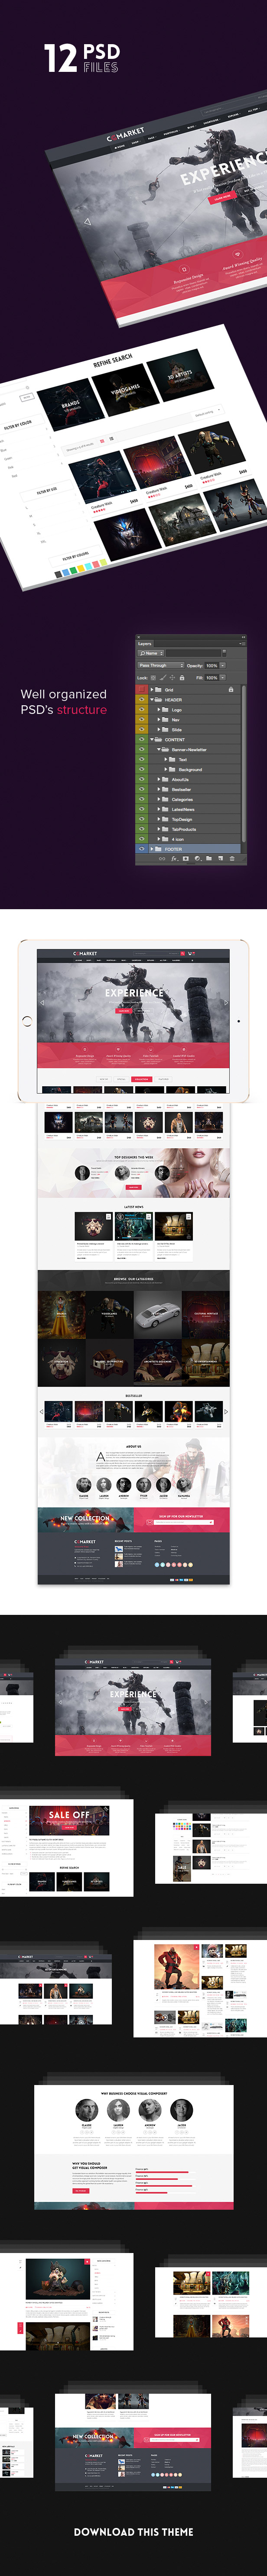 Dance CGMarket PSD Template for WordPress, Magento, OpenCart, PrestaShop, Shopify theme